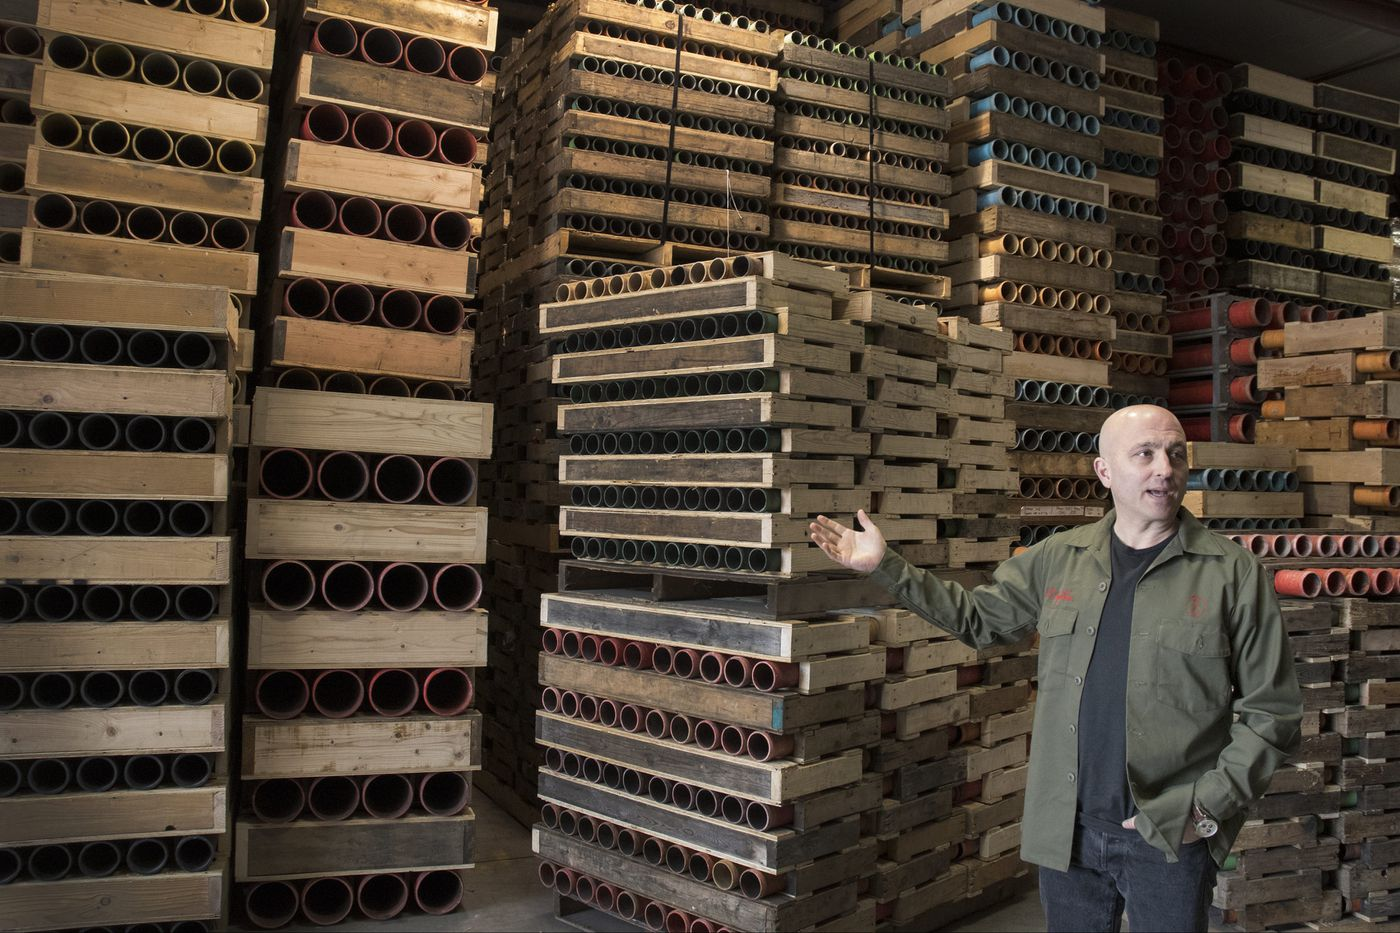 In western Pa., 'America's Fireworks Capital' takes another hit but sees bright skies ahead